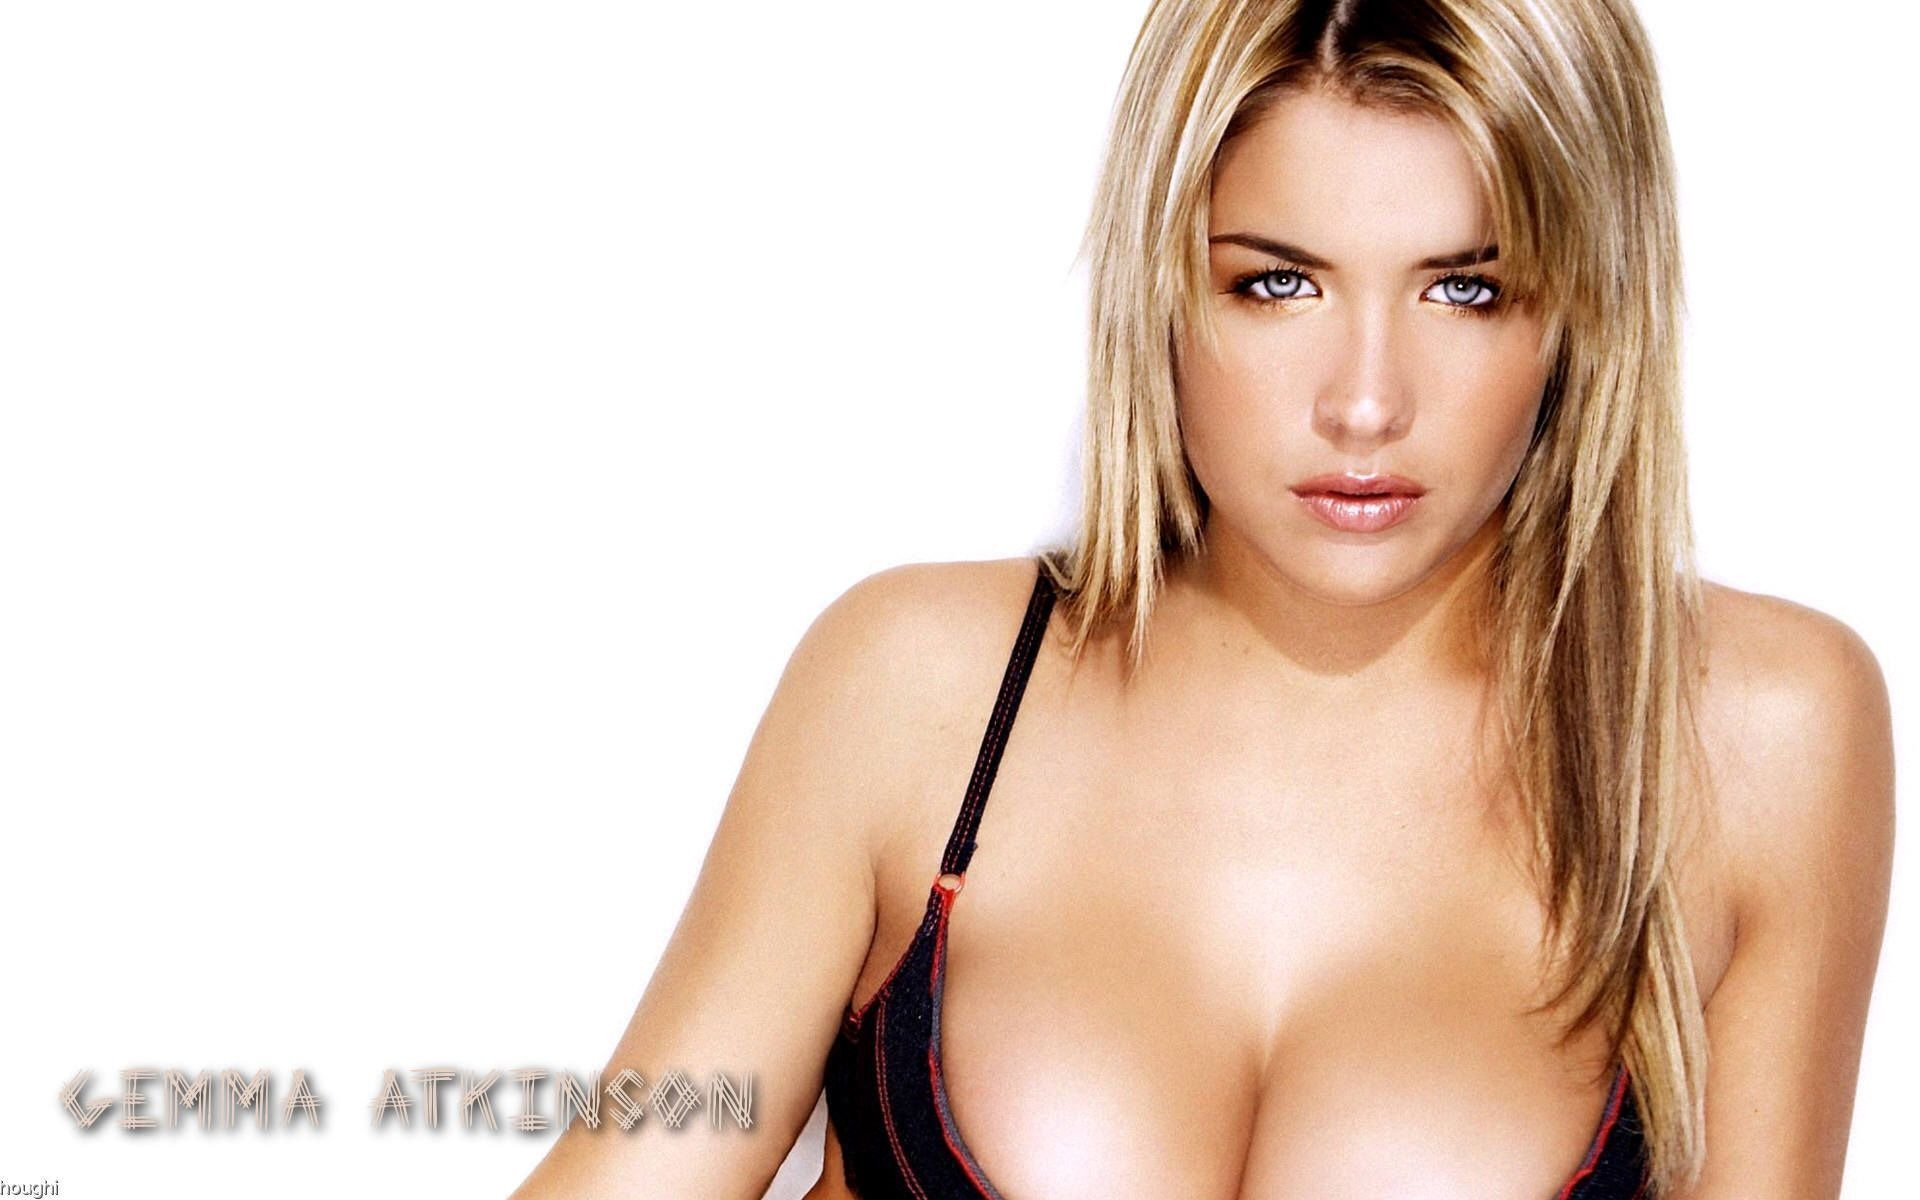 Gemma Atkinson #024 - 1920x1200 Wallpapers Pictures Photos Images